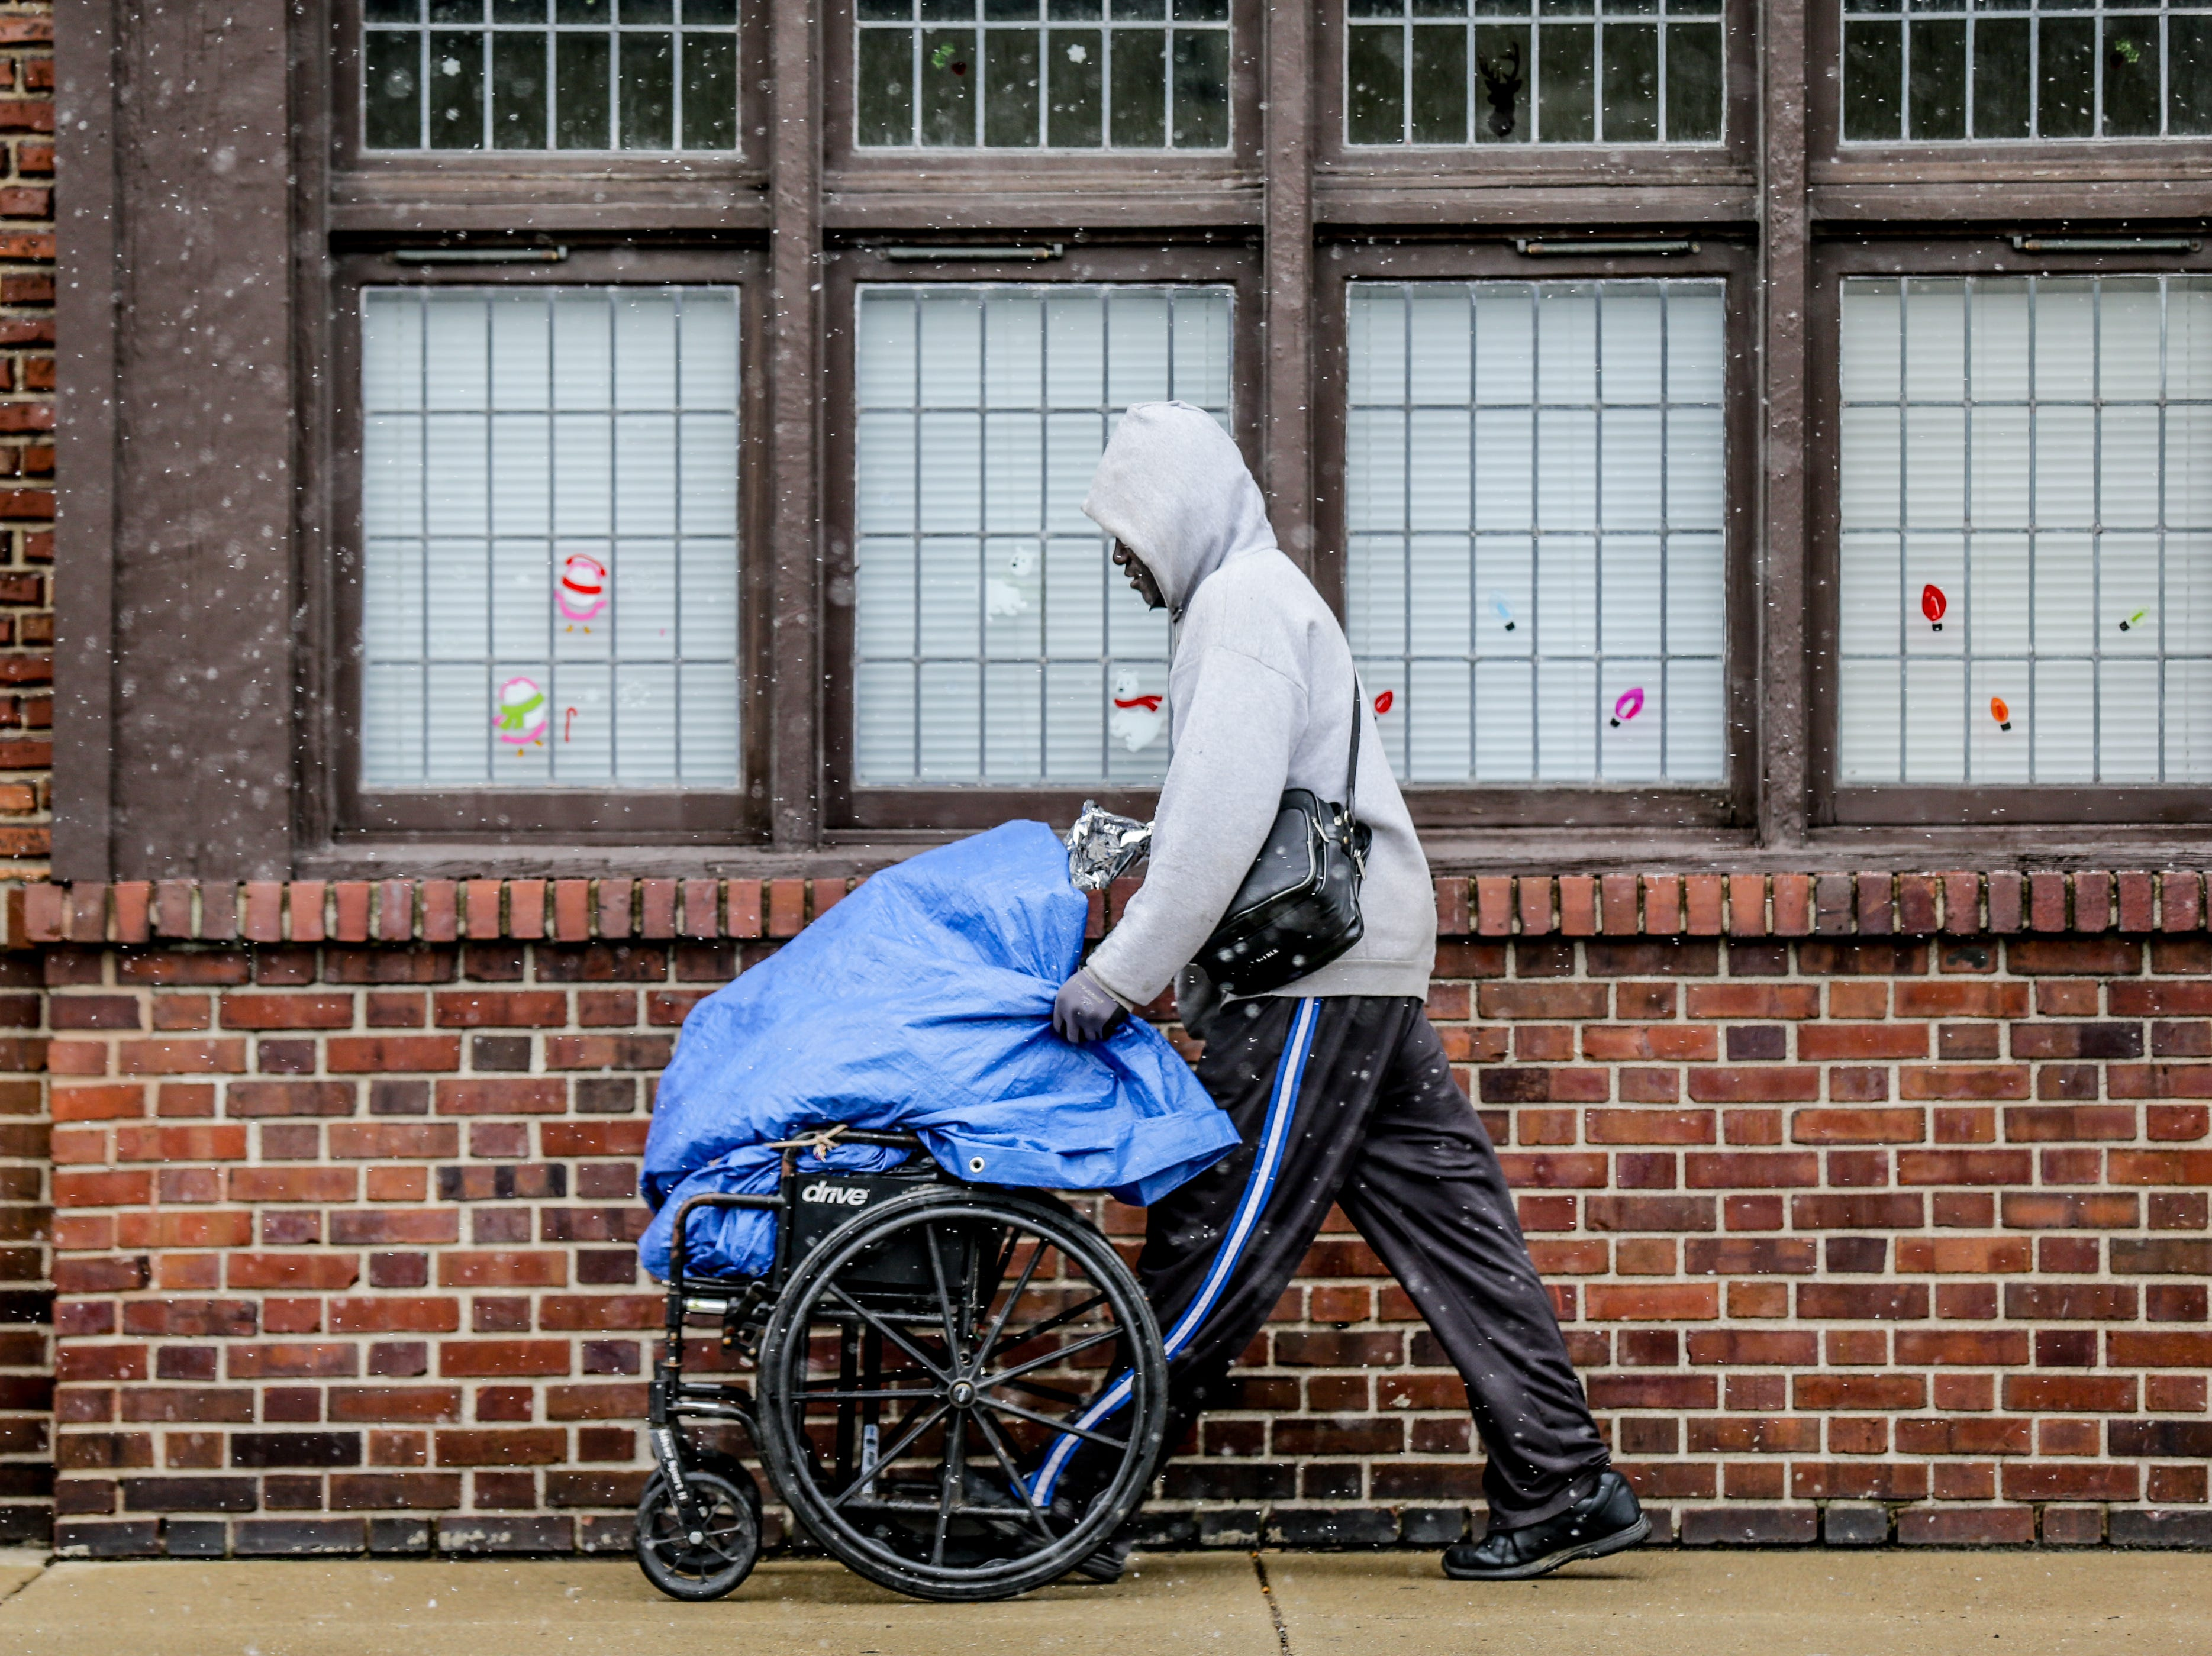 A pedestrian pushes a wheel chair as snow falls in Indianapolis on Monday, April 16, 2018.